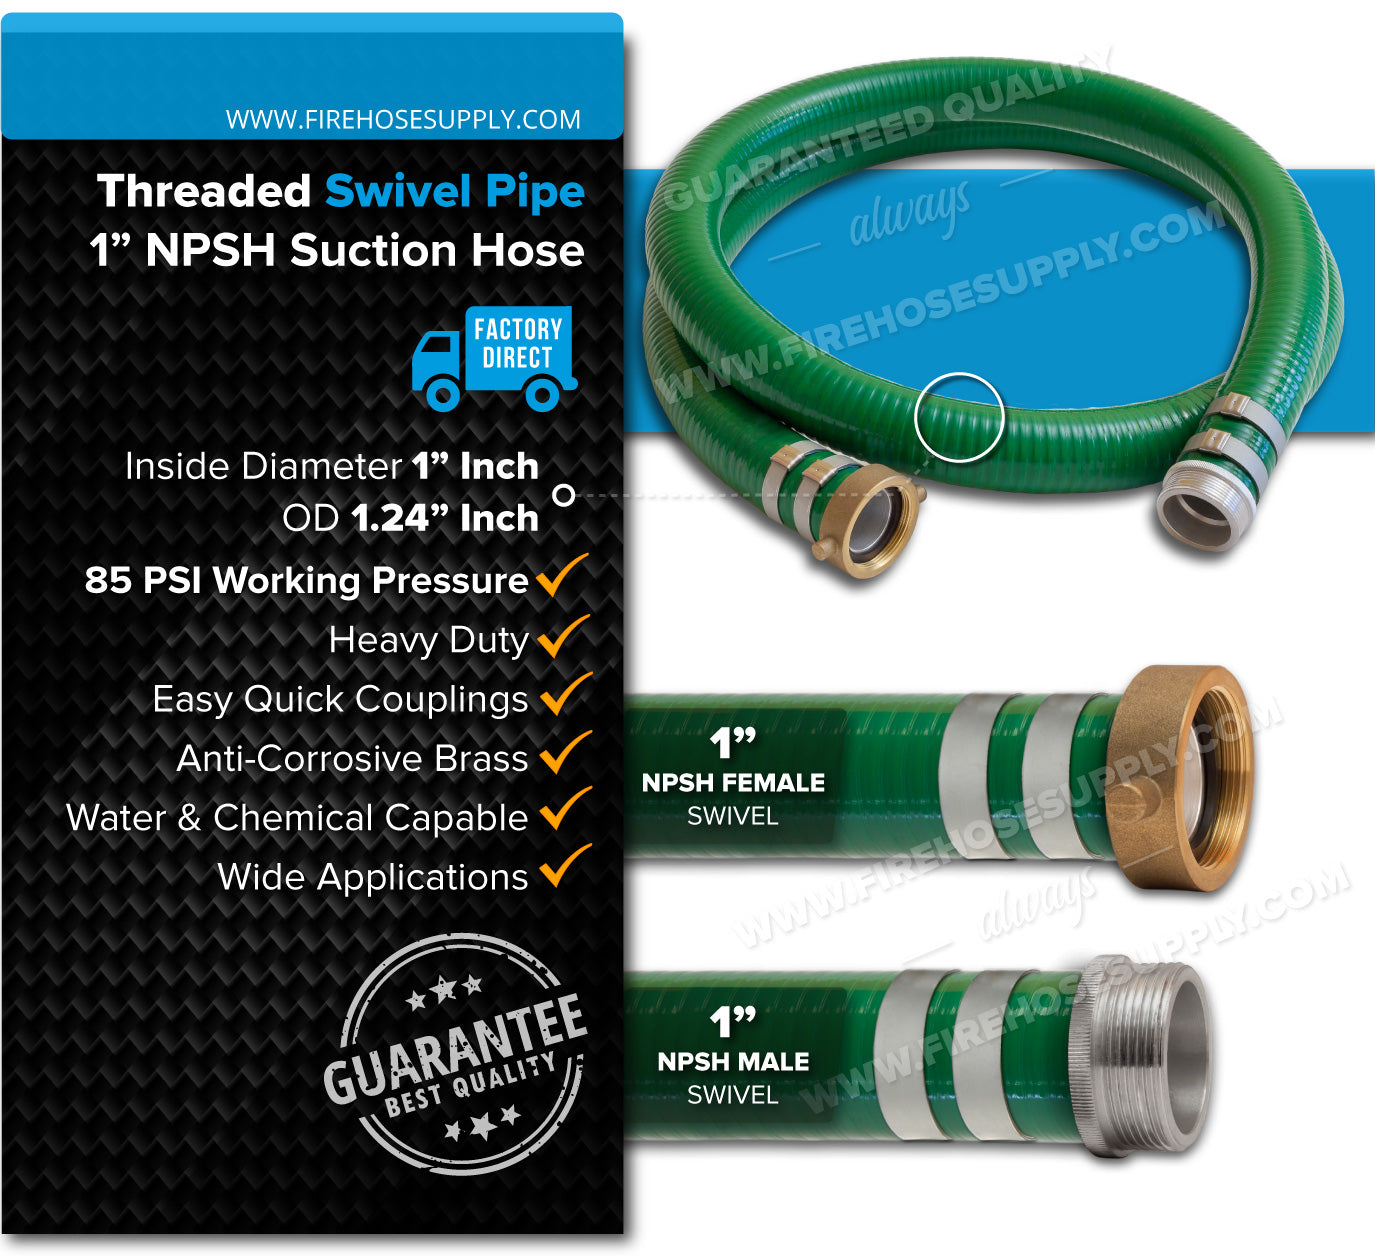 1 Inch Threaded Female x Male Green Suction Hose Overview